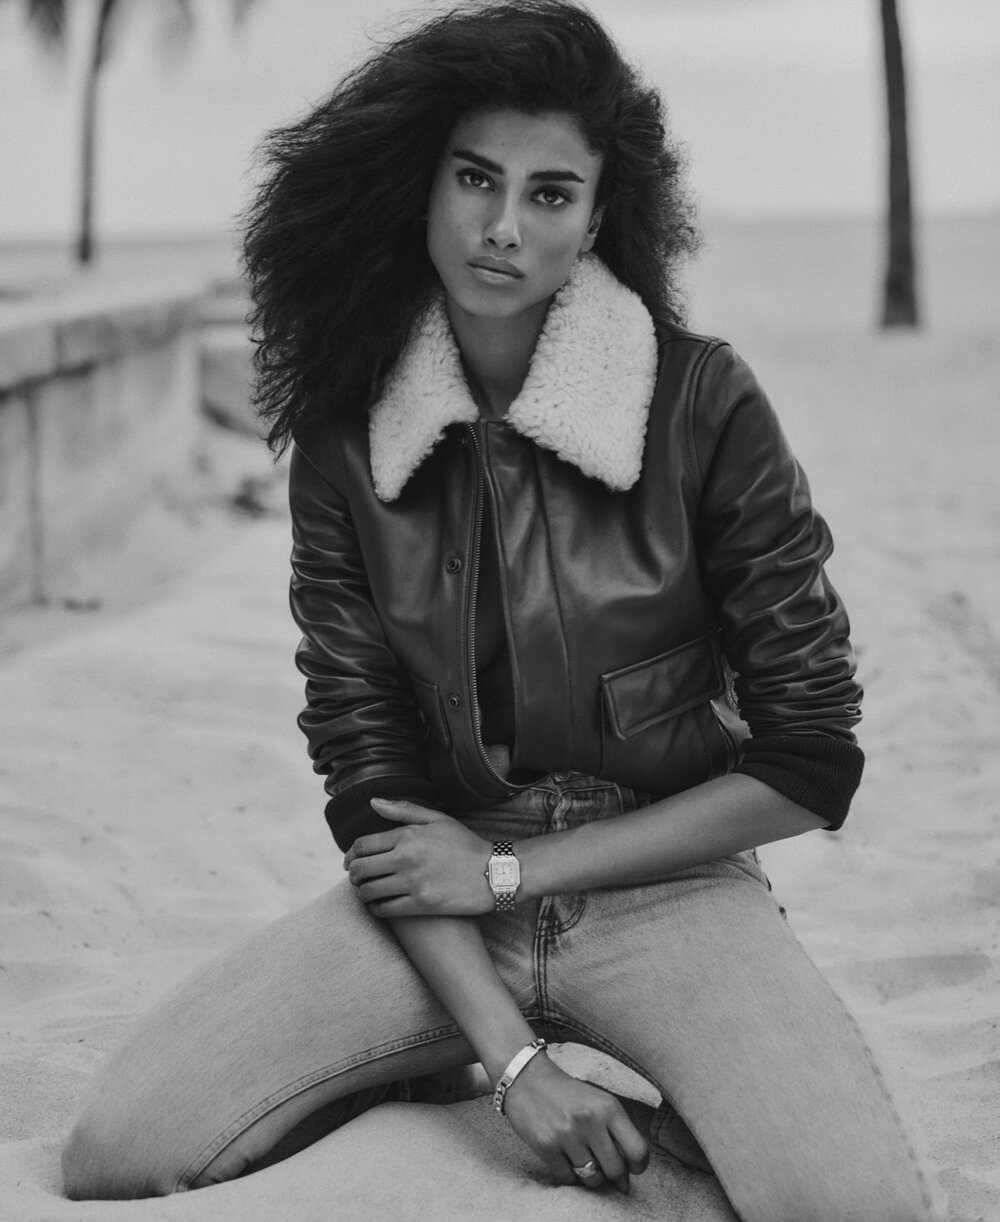 Imaan Hammam for ELLE US June-July issue. Photographed by Chris Colls.